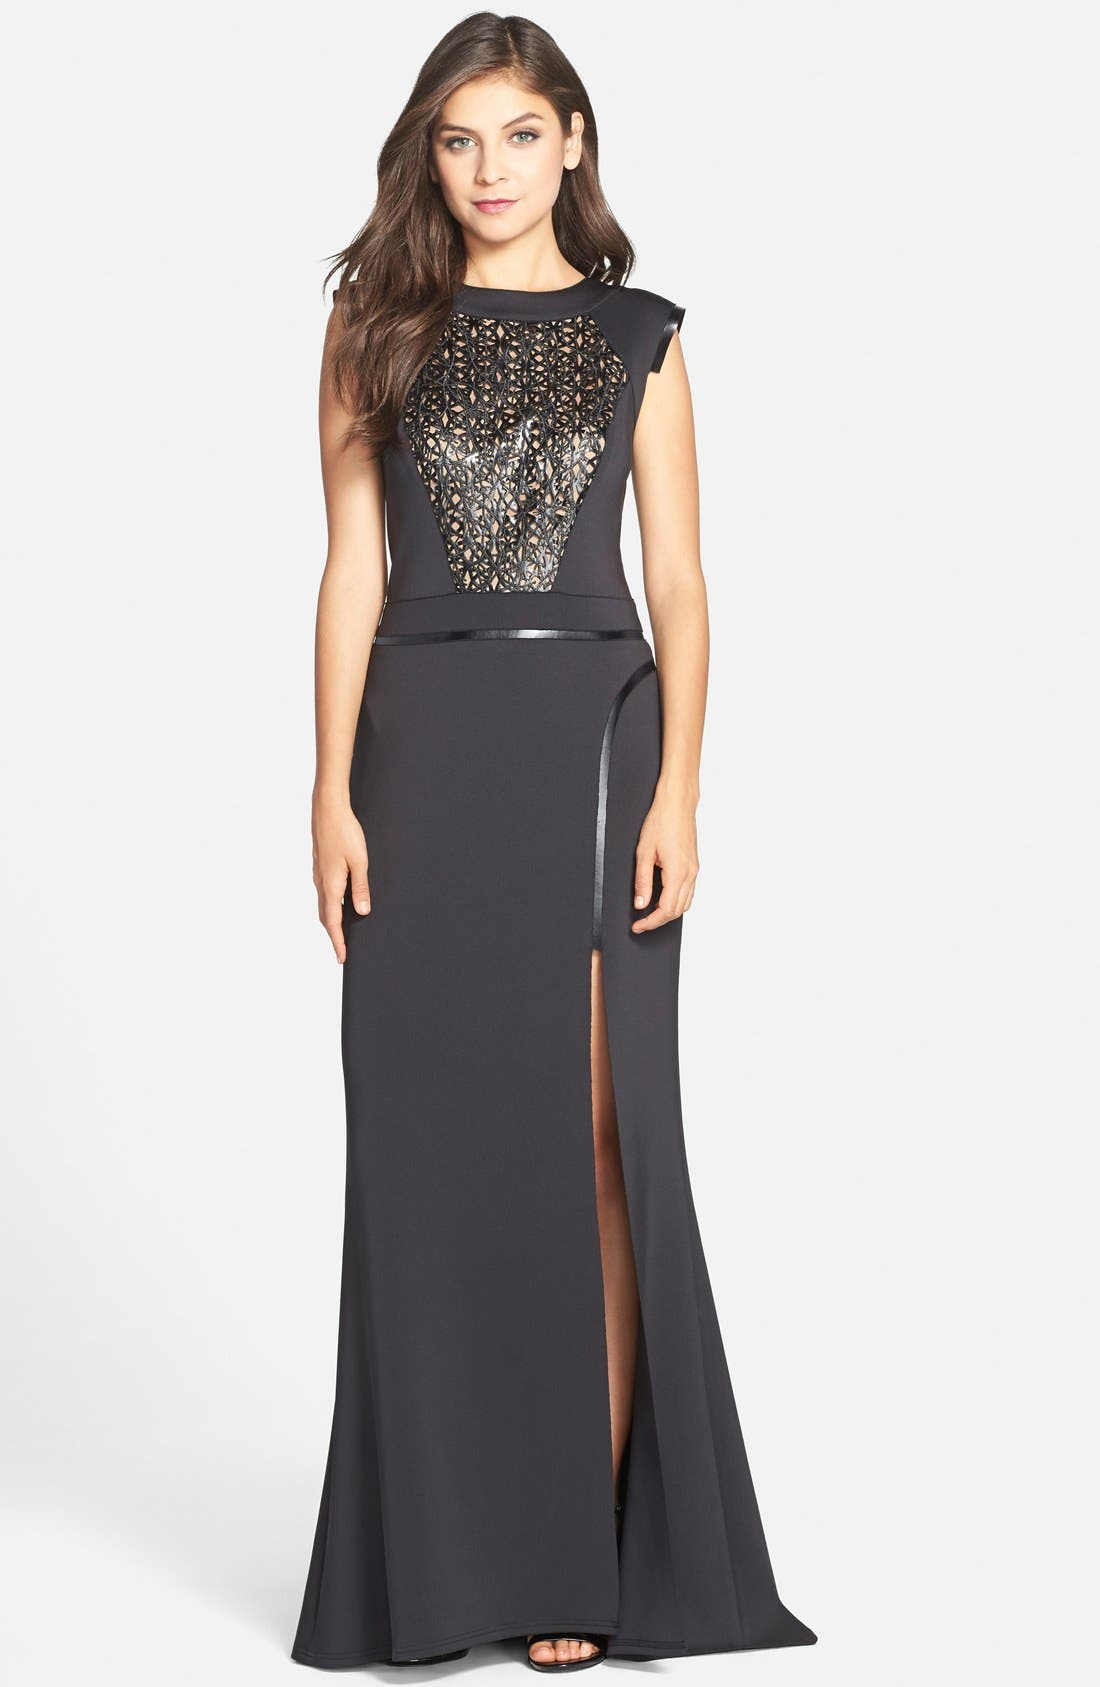 Alternate Image 1 Selected - Tadashi Shoji Laser Cut Leatherette & Neoprene Gown